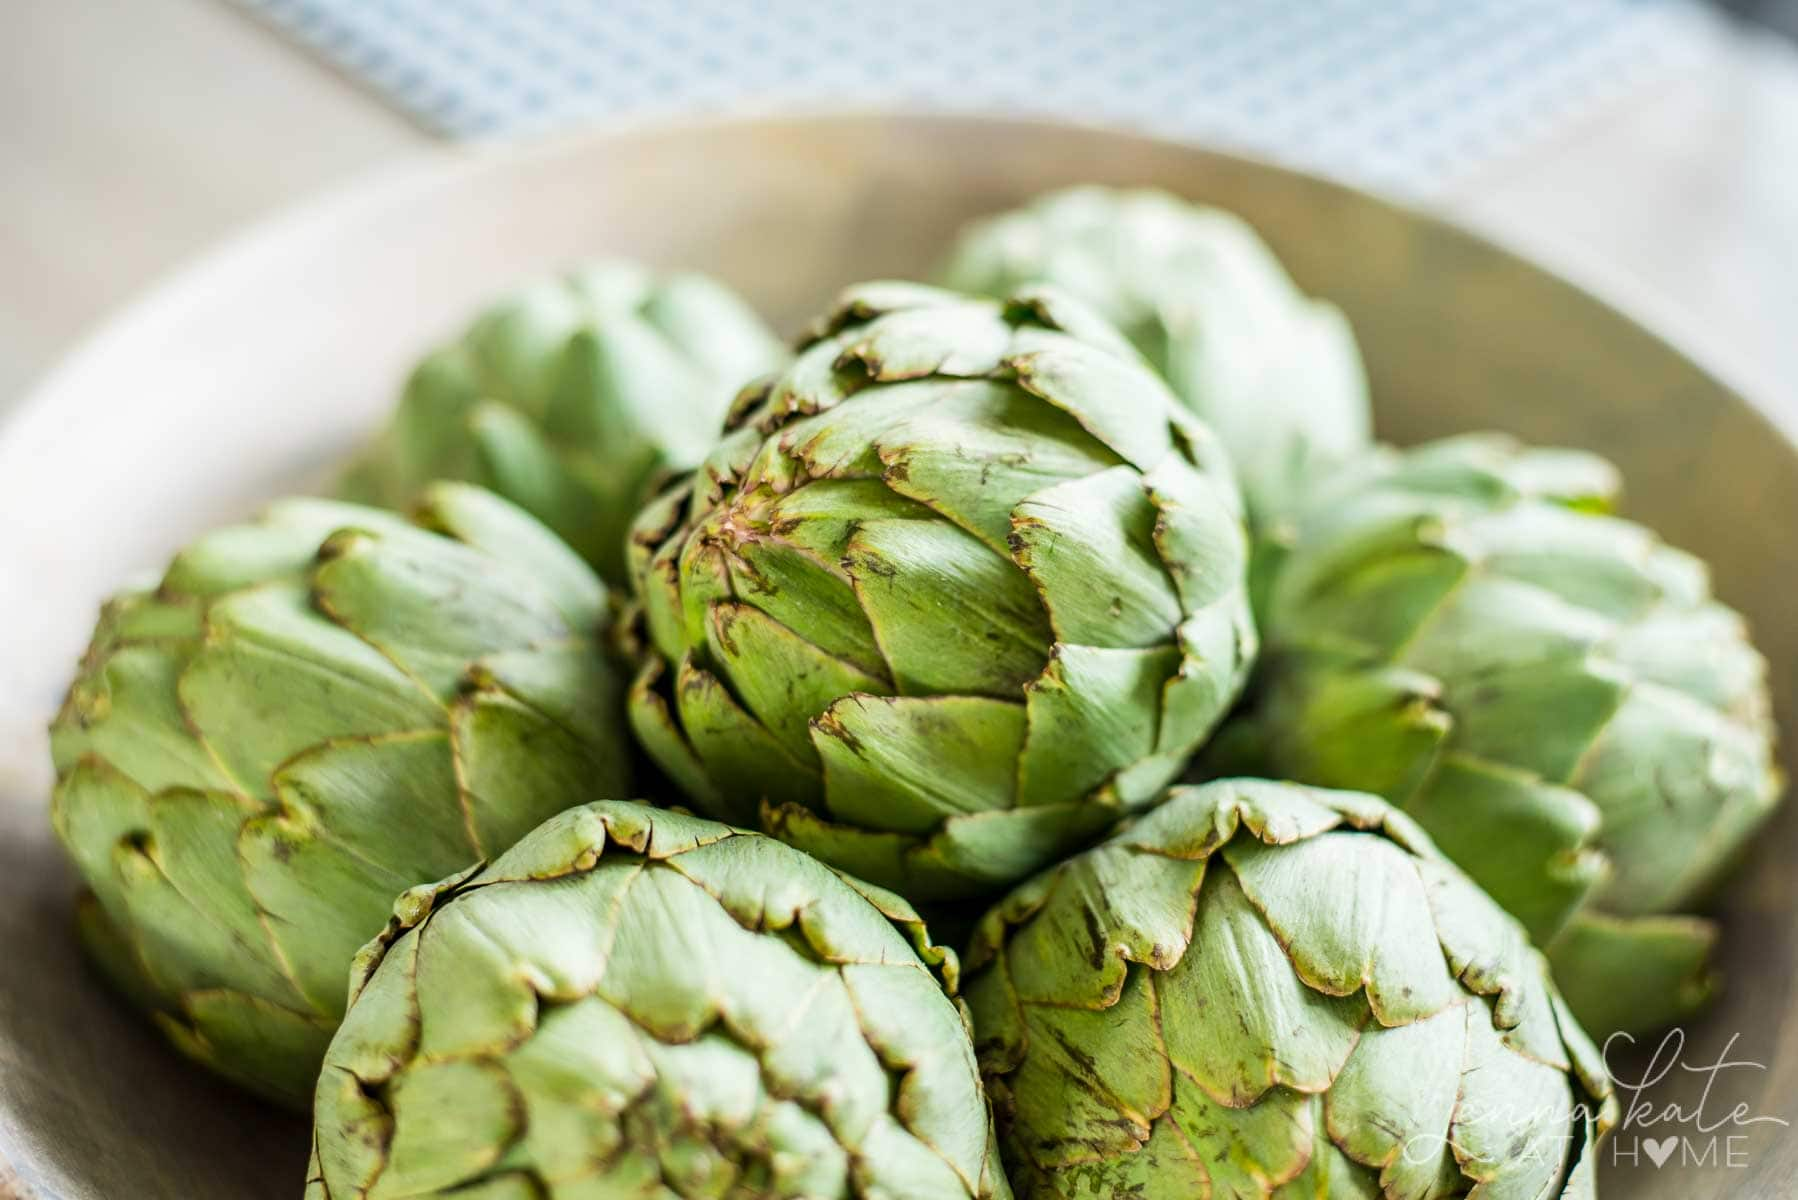 A bowl of artichokes or any other fruit or vegetable is a simple natural fall decorating idea.